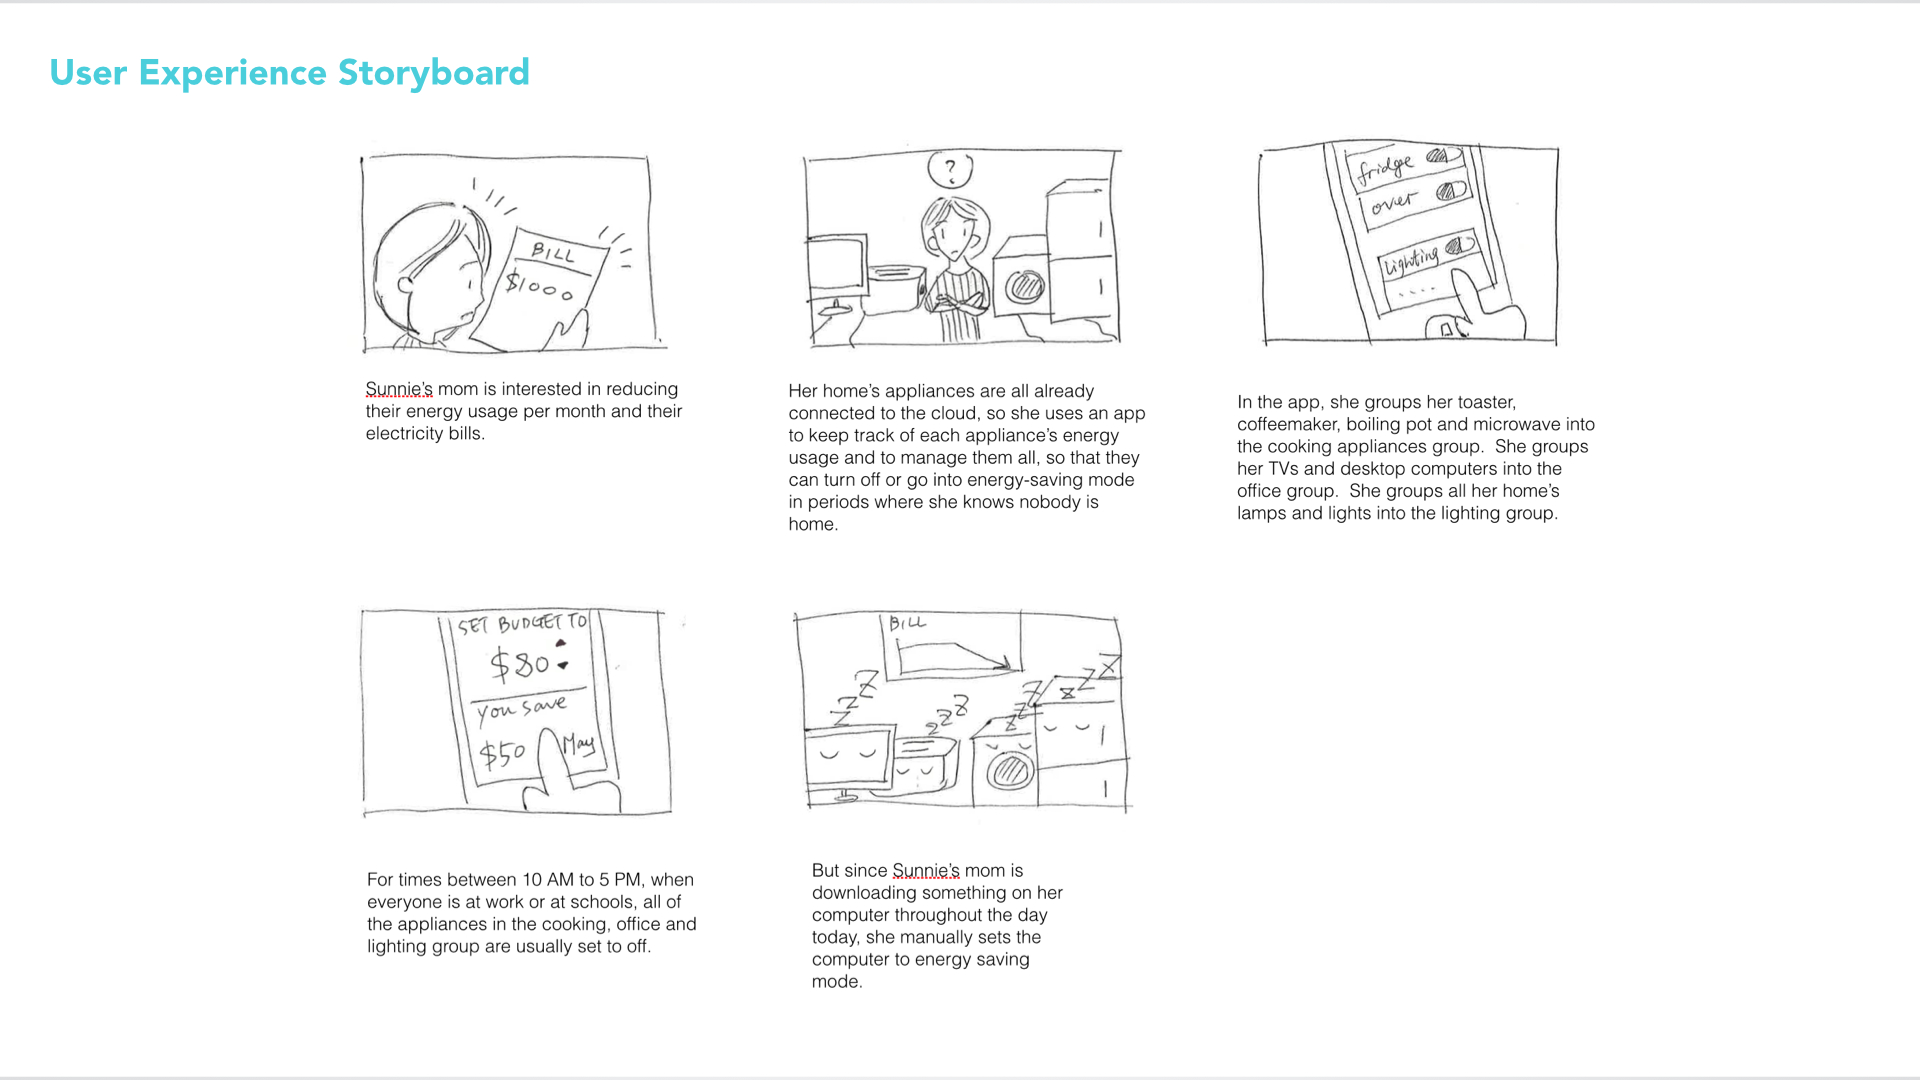 "At the beginning of our project, we explored various directions related to household informatics and data visualization.  This is one of 3 user experience storyboards we made and the last image of appliances ""sleeping"" is what ultimately inspired our idea for Zooly."